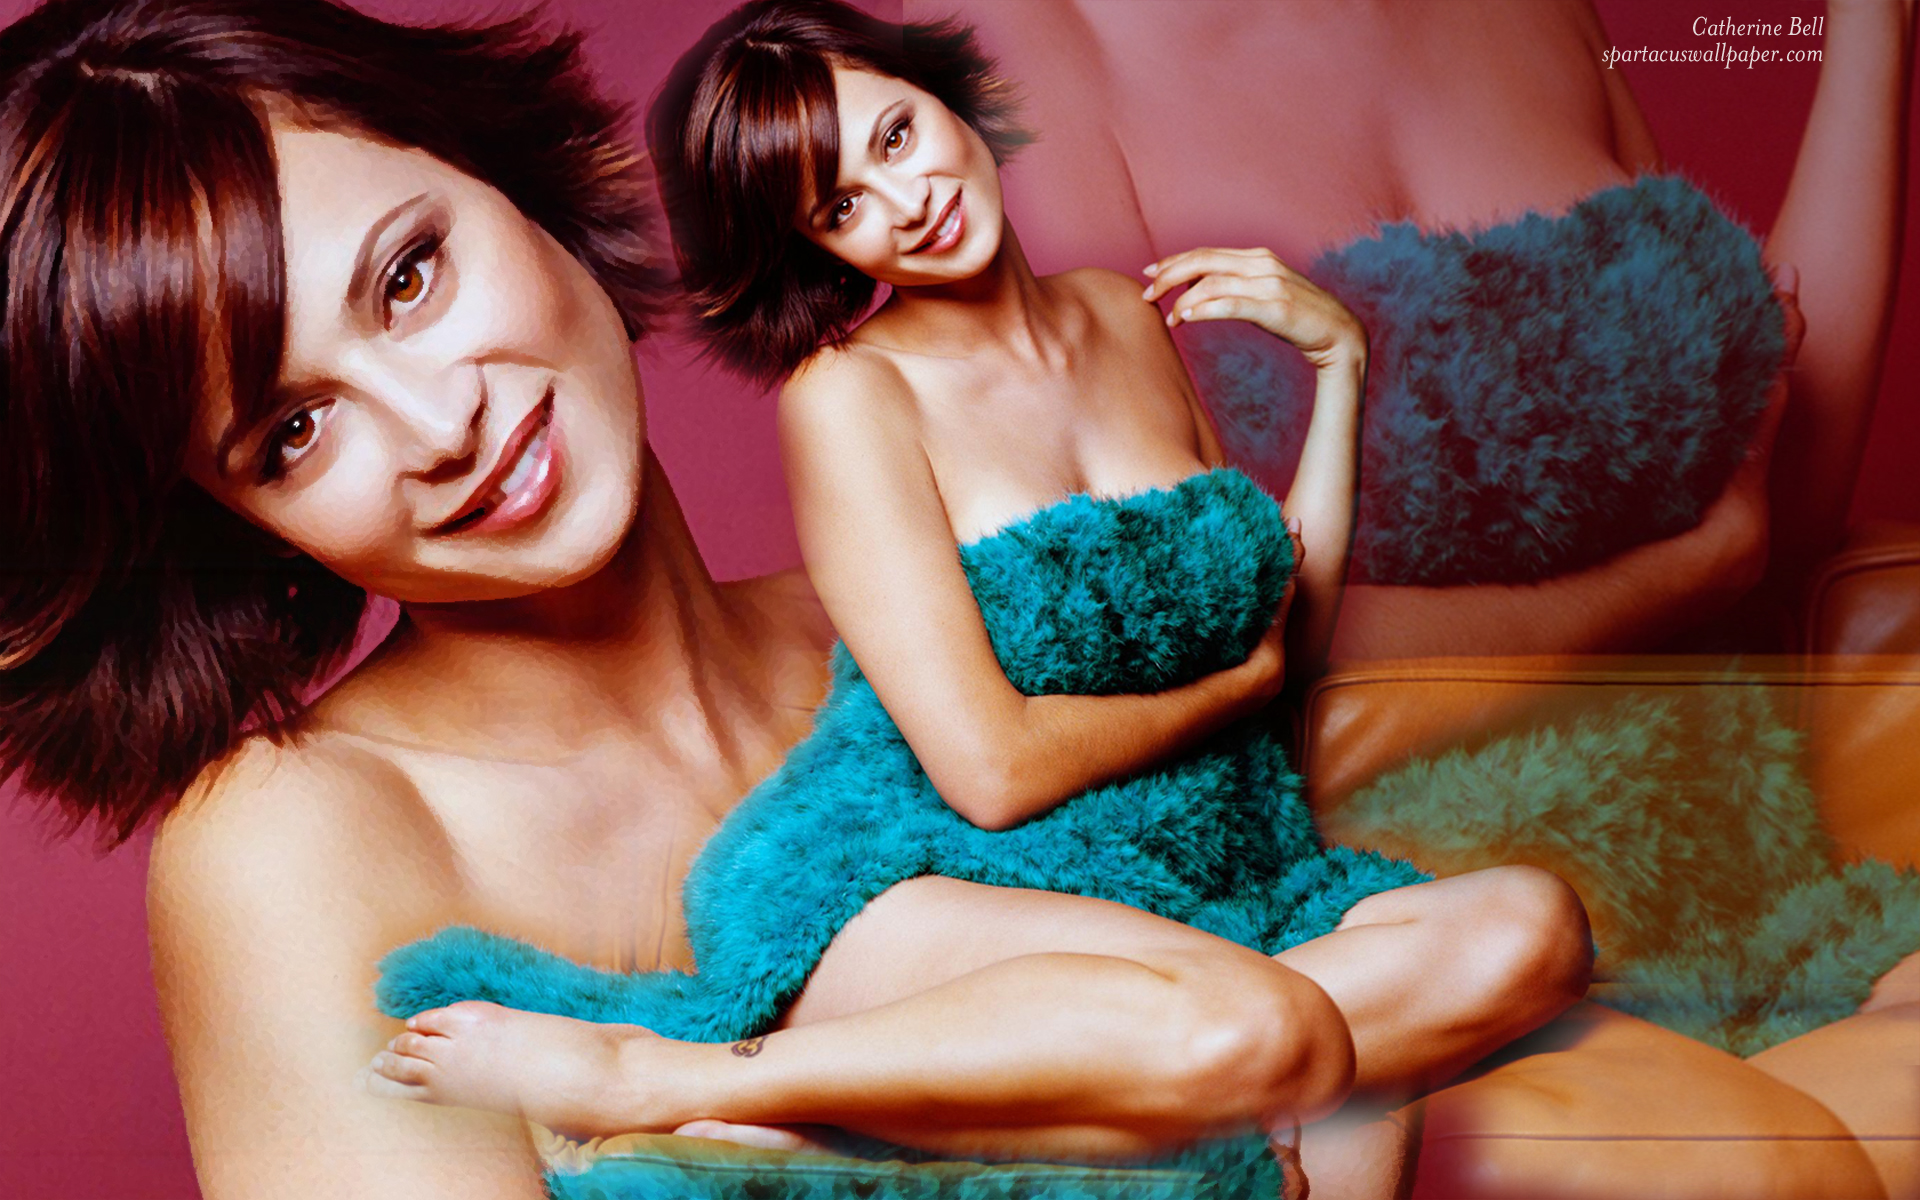 1920x1200 - Catherine Bell Wallpapers 3